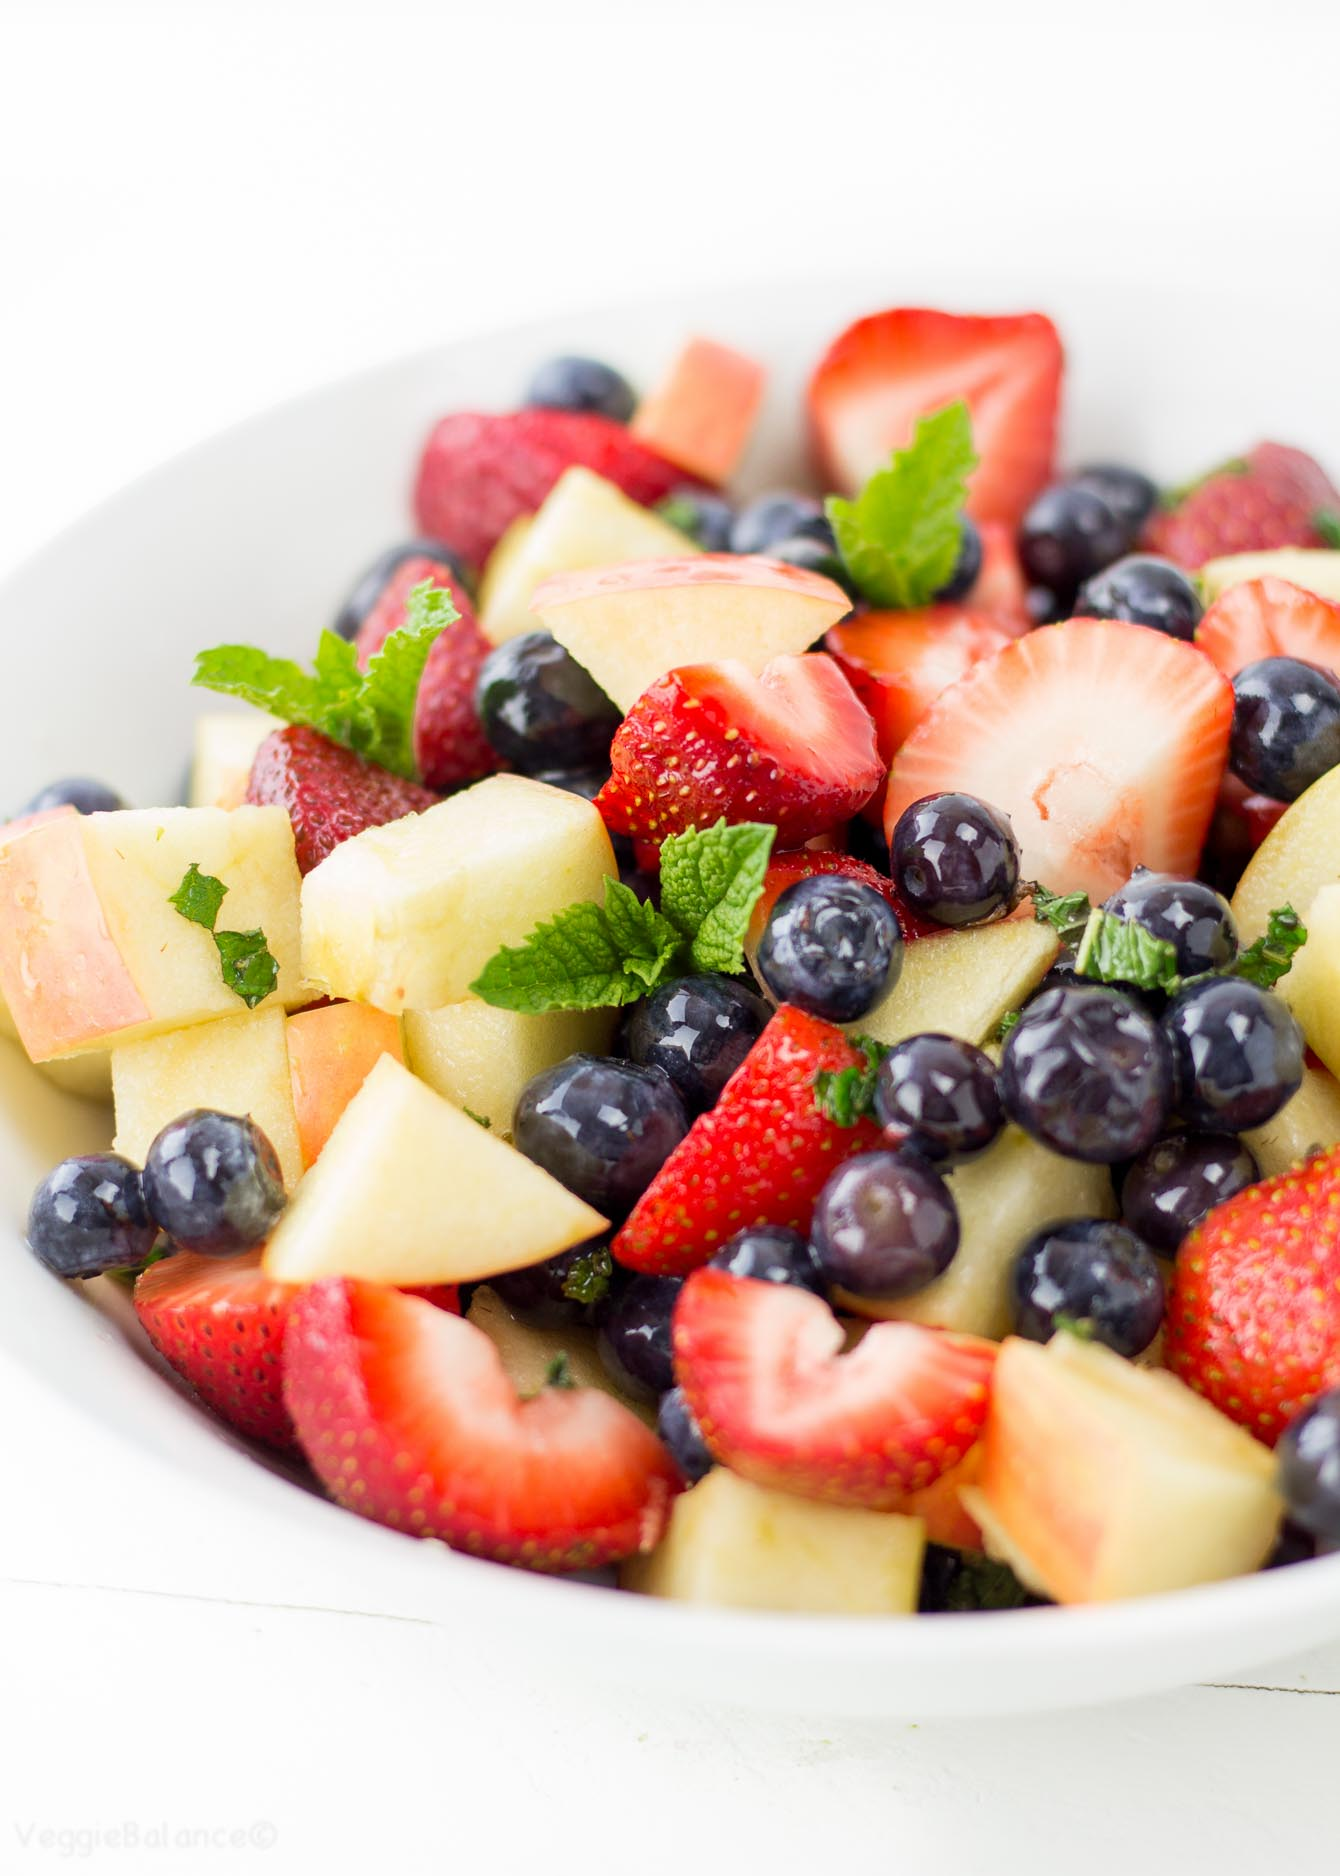 Lemon Mint Fruit Salad